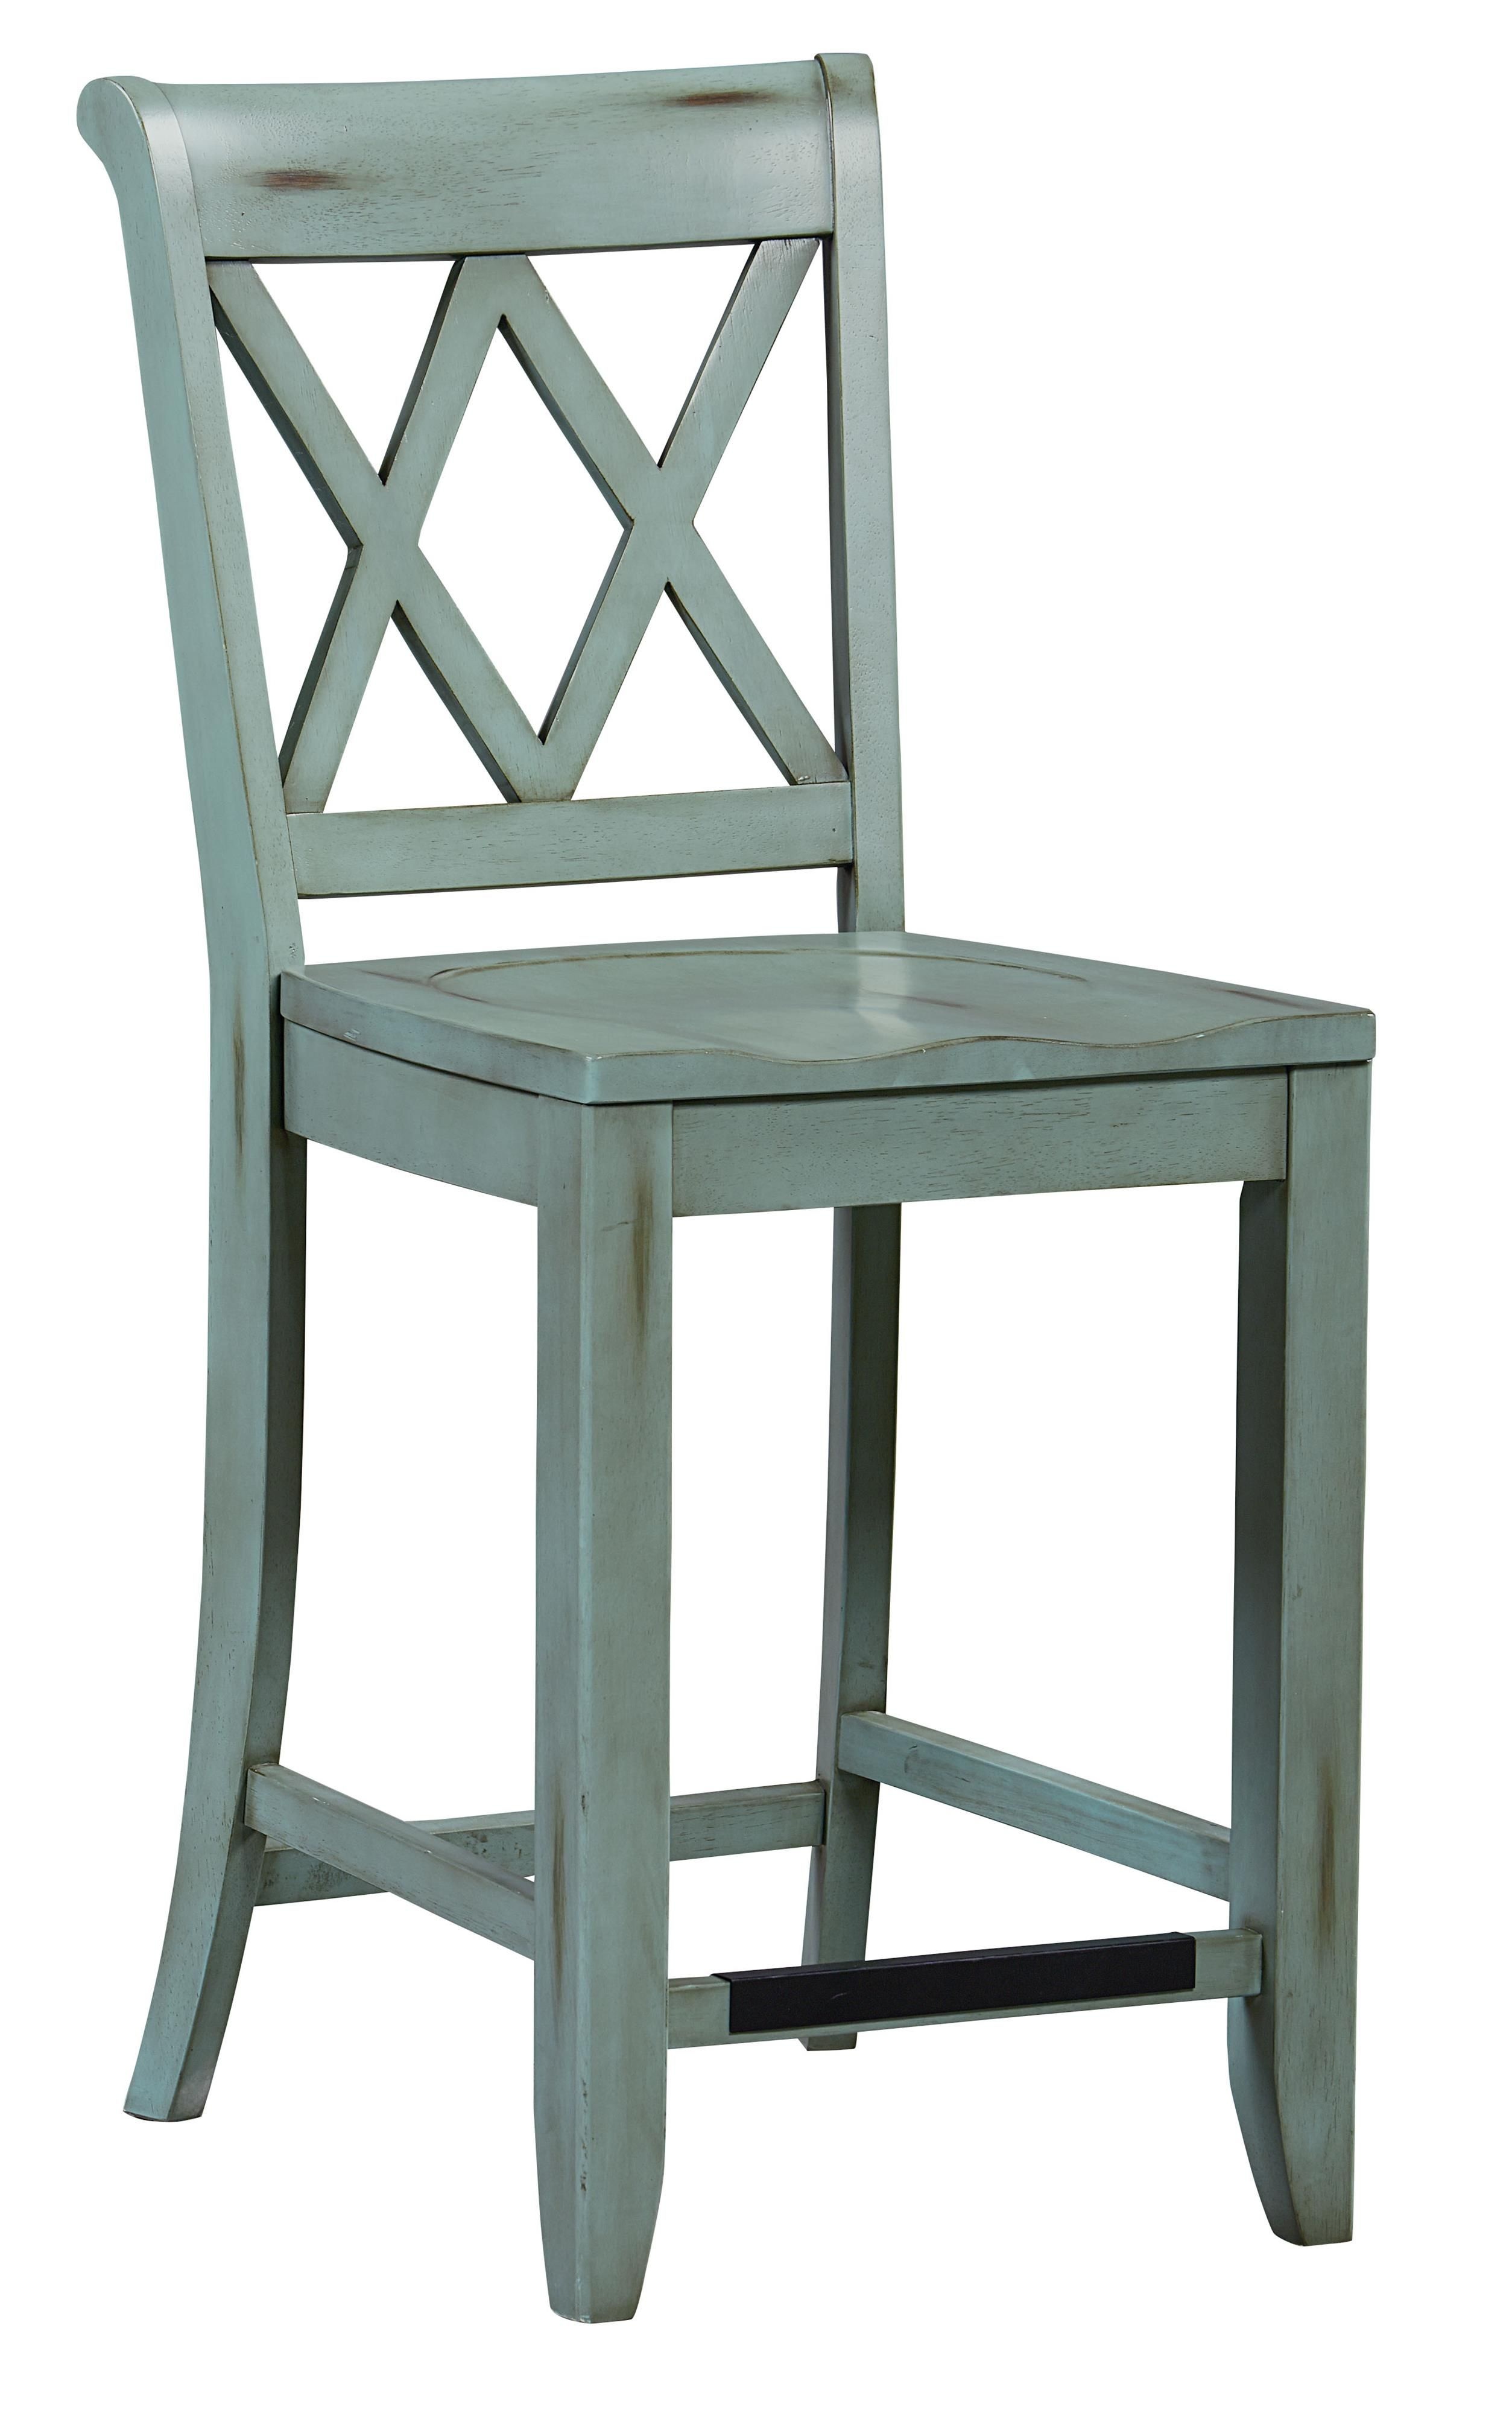 Vintage Counter Height Stool By Standard Furniture At Great American Home  Store